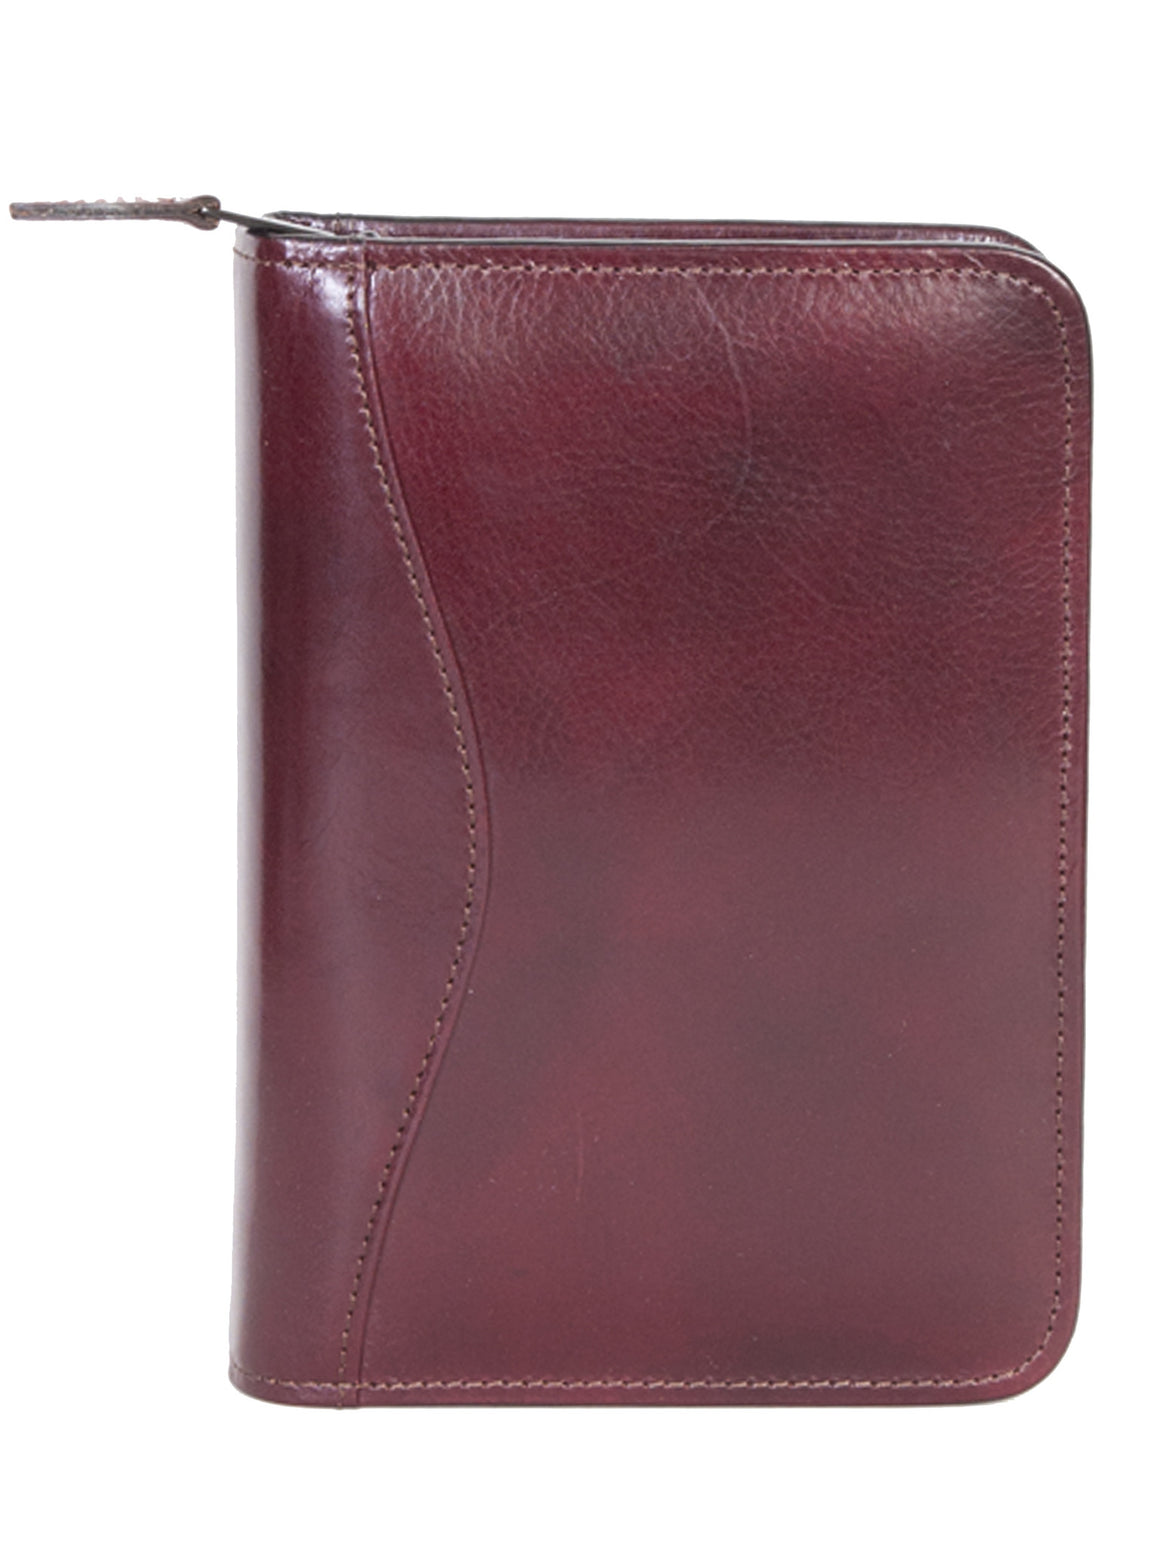 Scully Leather Phone Address Book Walnut